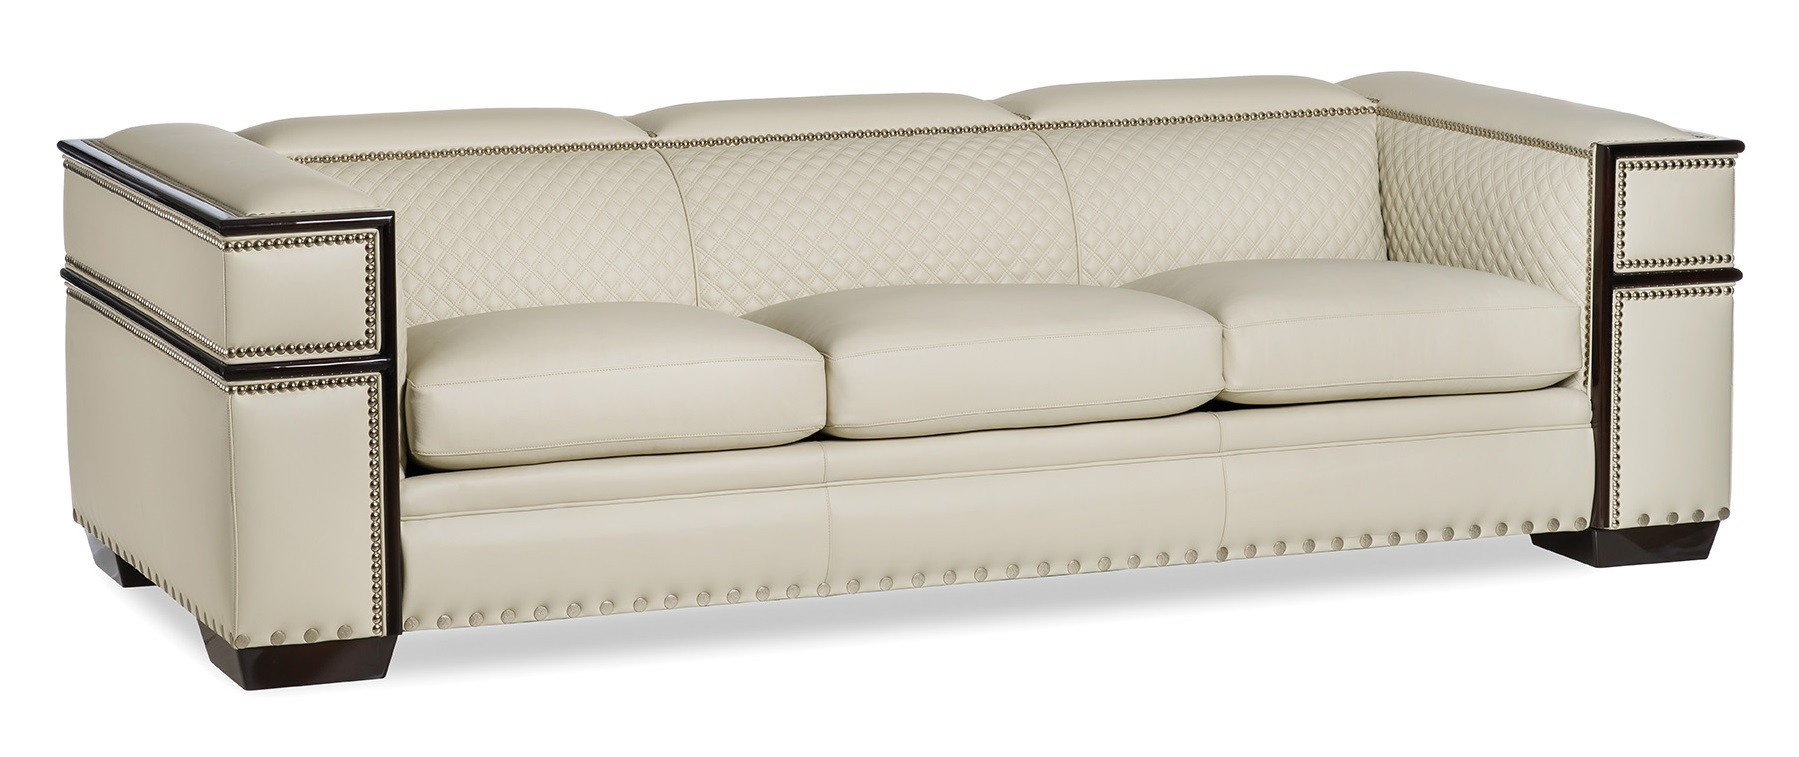 leather easy chair elegant modern and geometric off white sofa 16621 | elegant modern and geometric off white sofa